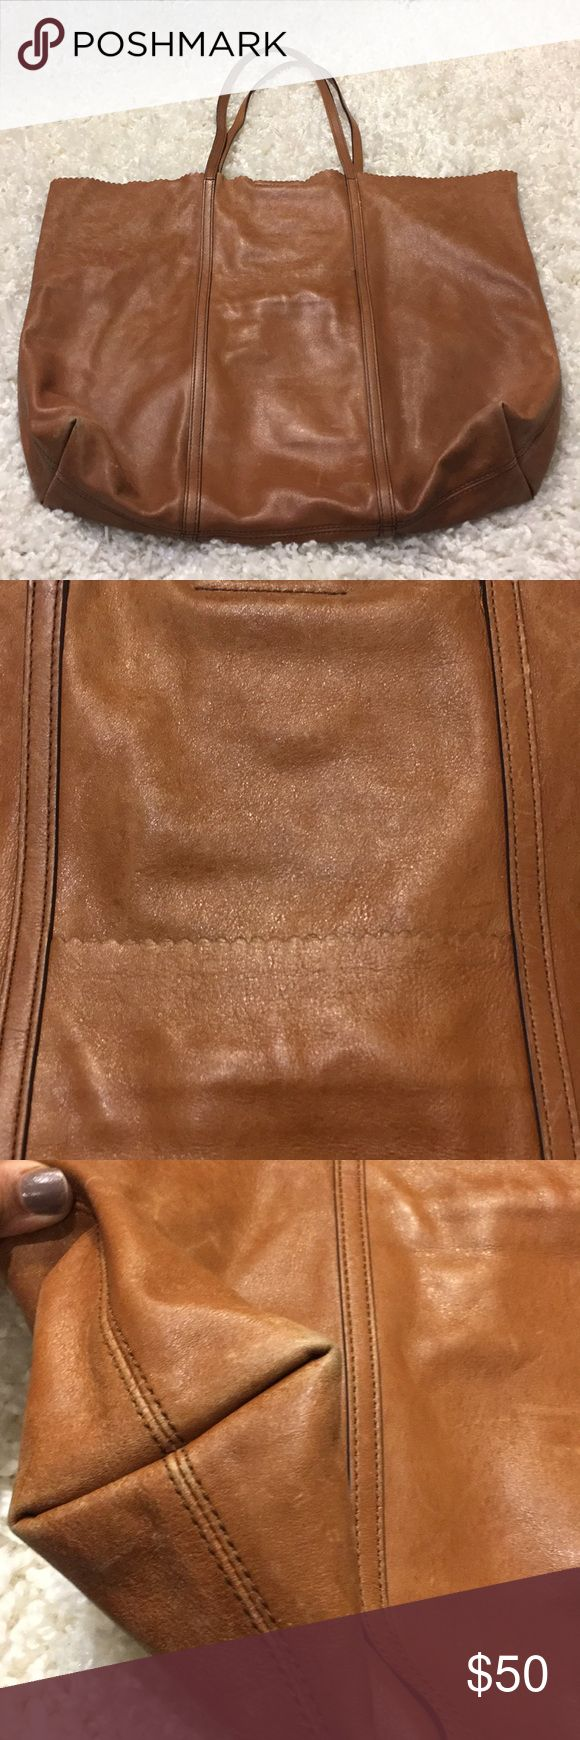 "Banana republic leather tote bag 100% leather. Wear shown in pics. 15"" x 20"" x 4. 9.5"" Banana Republic Bags"